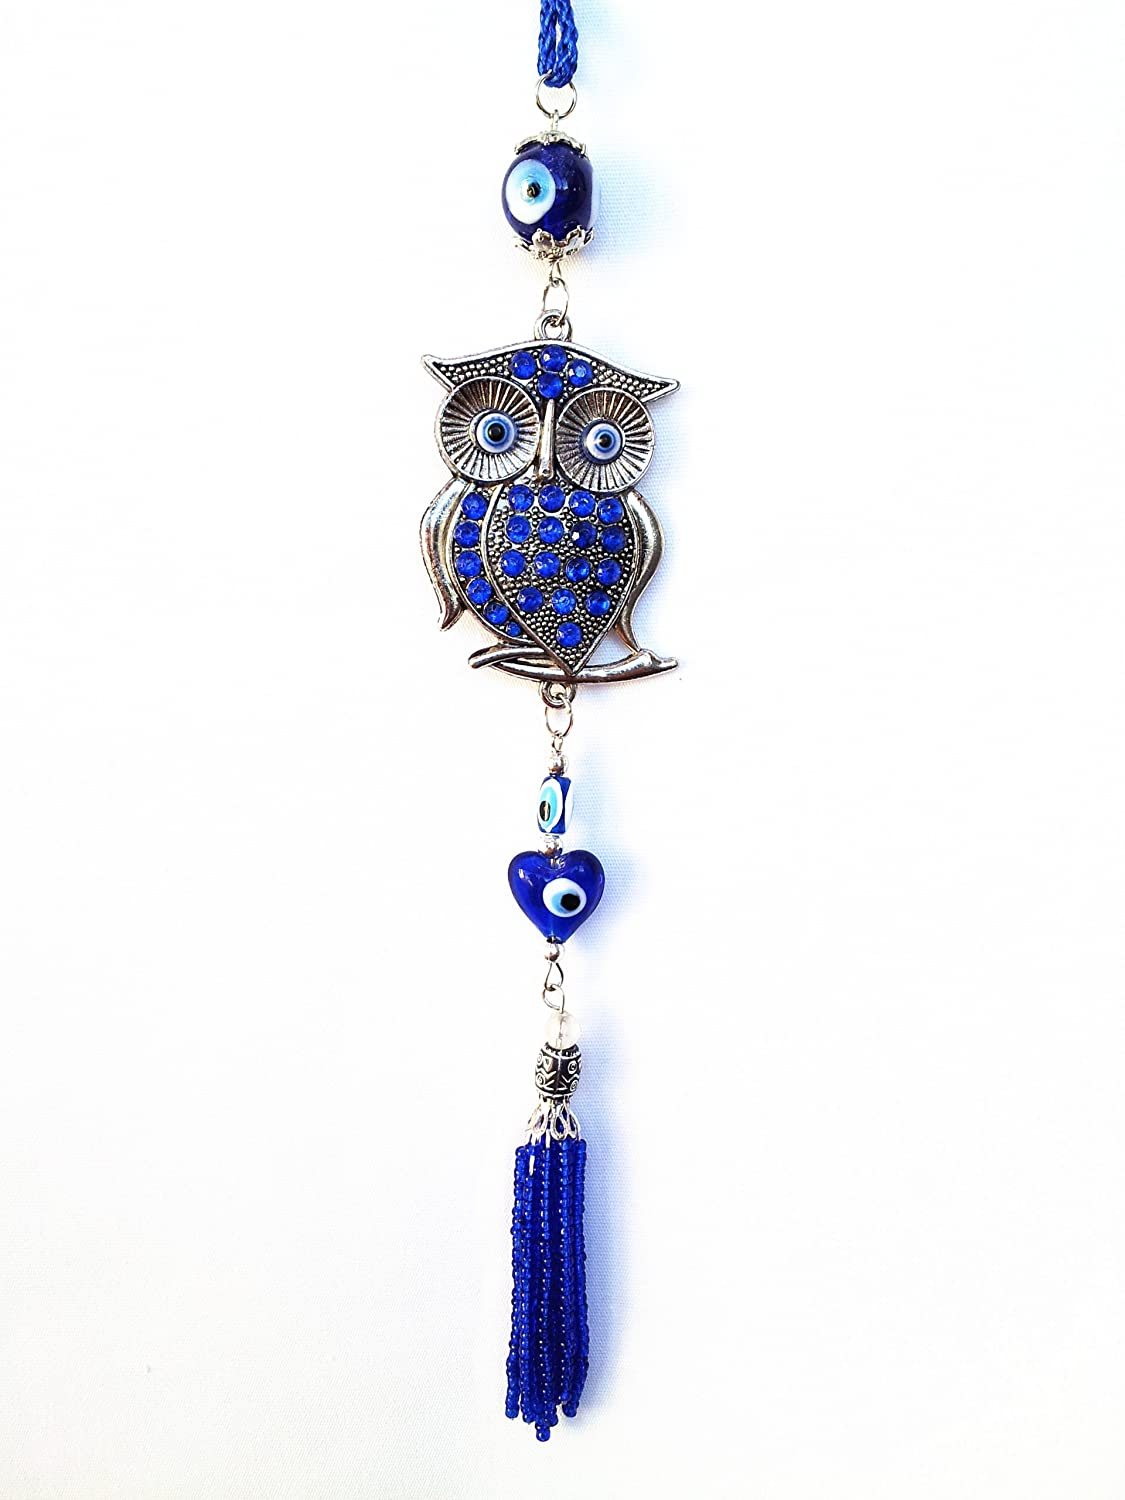 -25 BDEEH-02 Blue Evil Eye Decor Charm Hanging with Owl for Protection with a Betterdecor Pouch